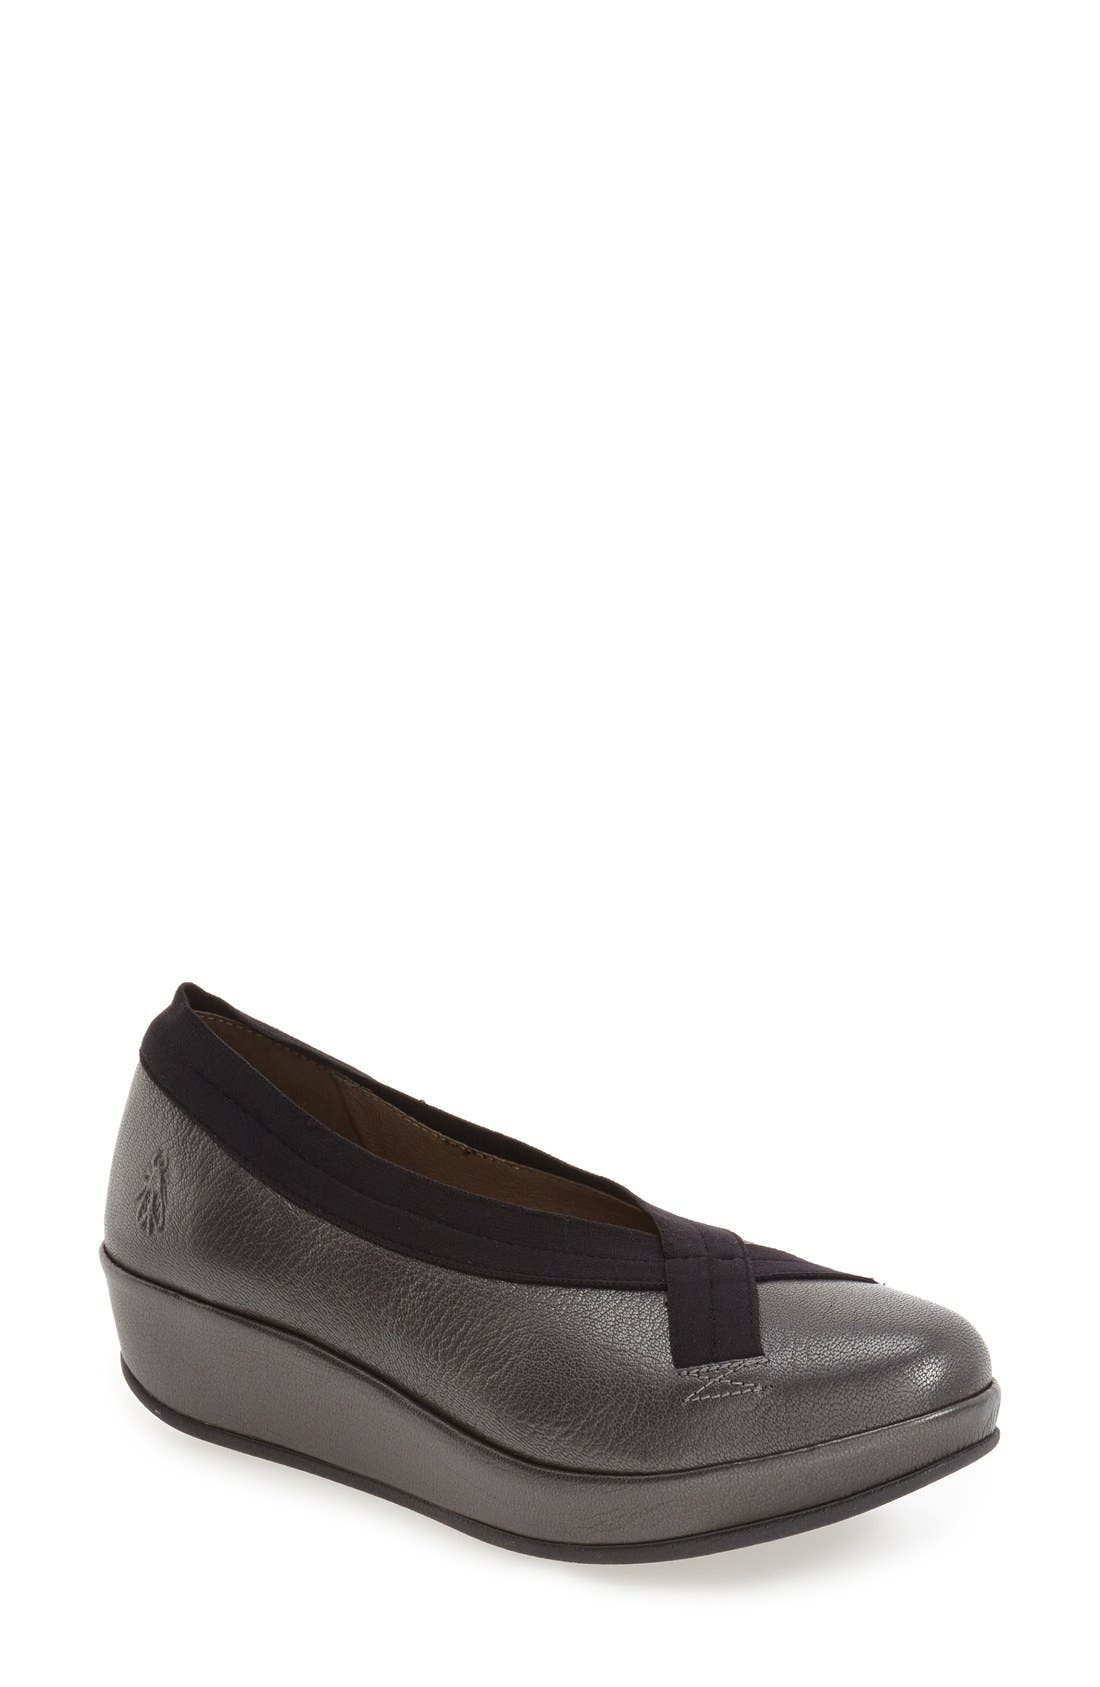 FLY LONDON 'Bobi' Wedge Flat